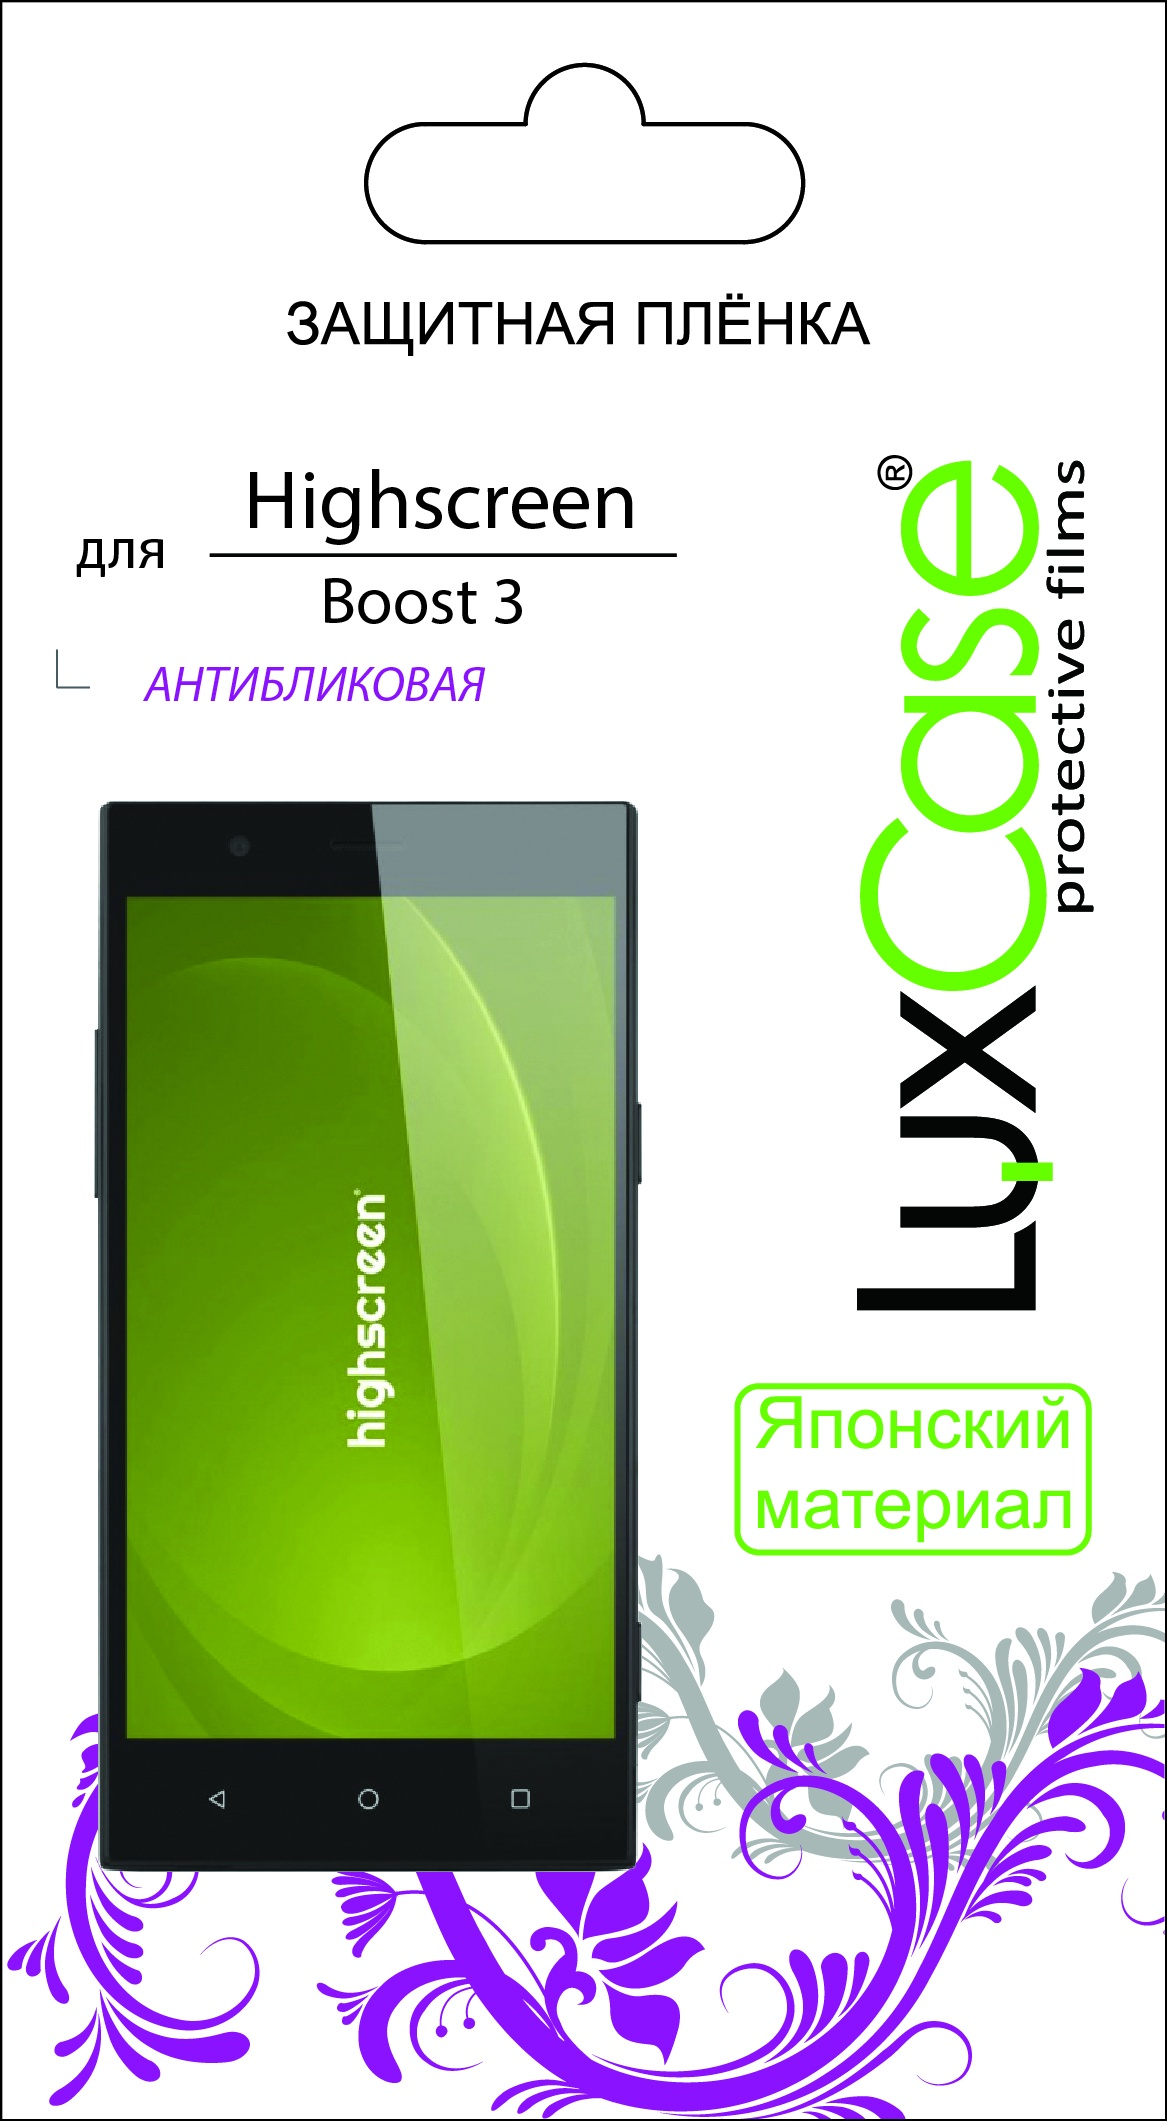 все цены на Пленка Highscreen Boost 3 / антибликовая онлайн